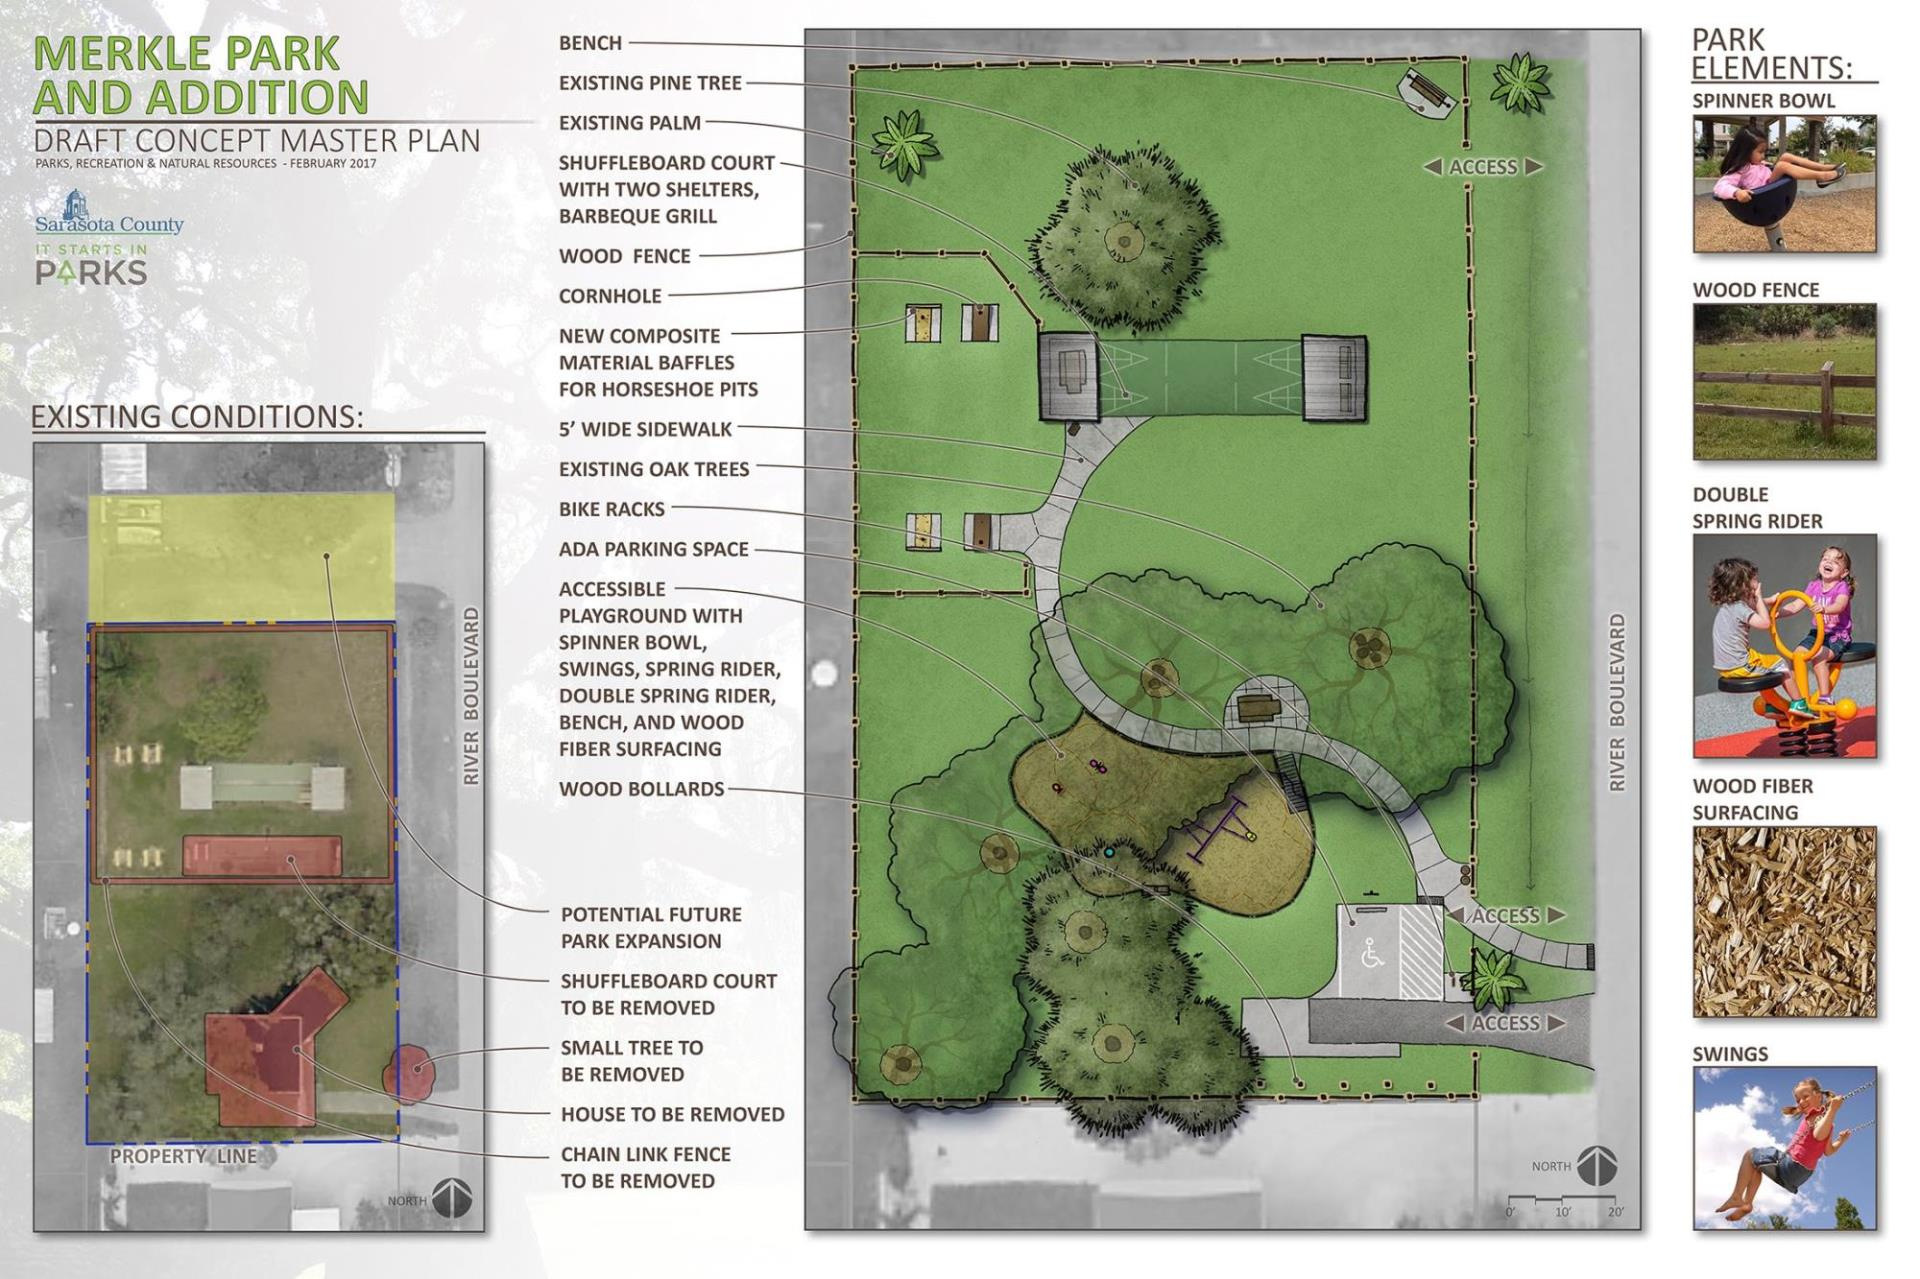 Draft Site Concept Plan for Merkle Park